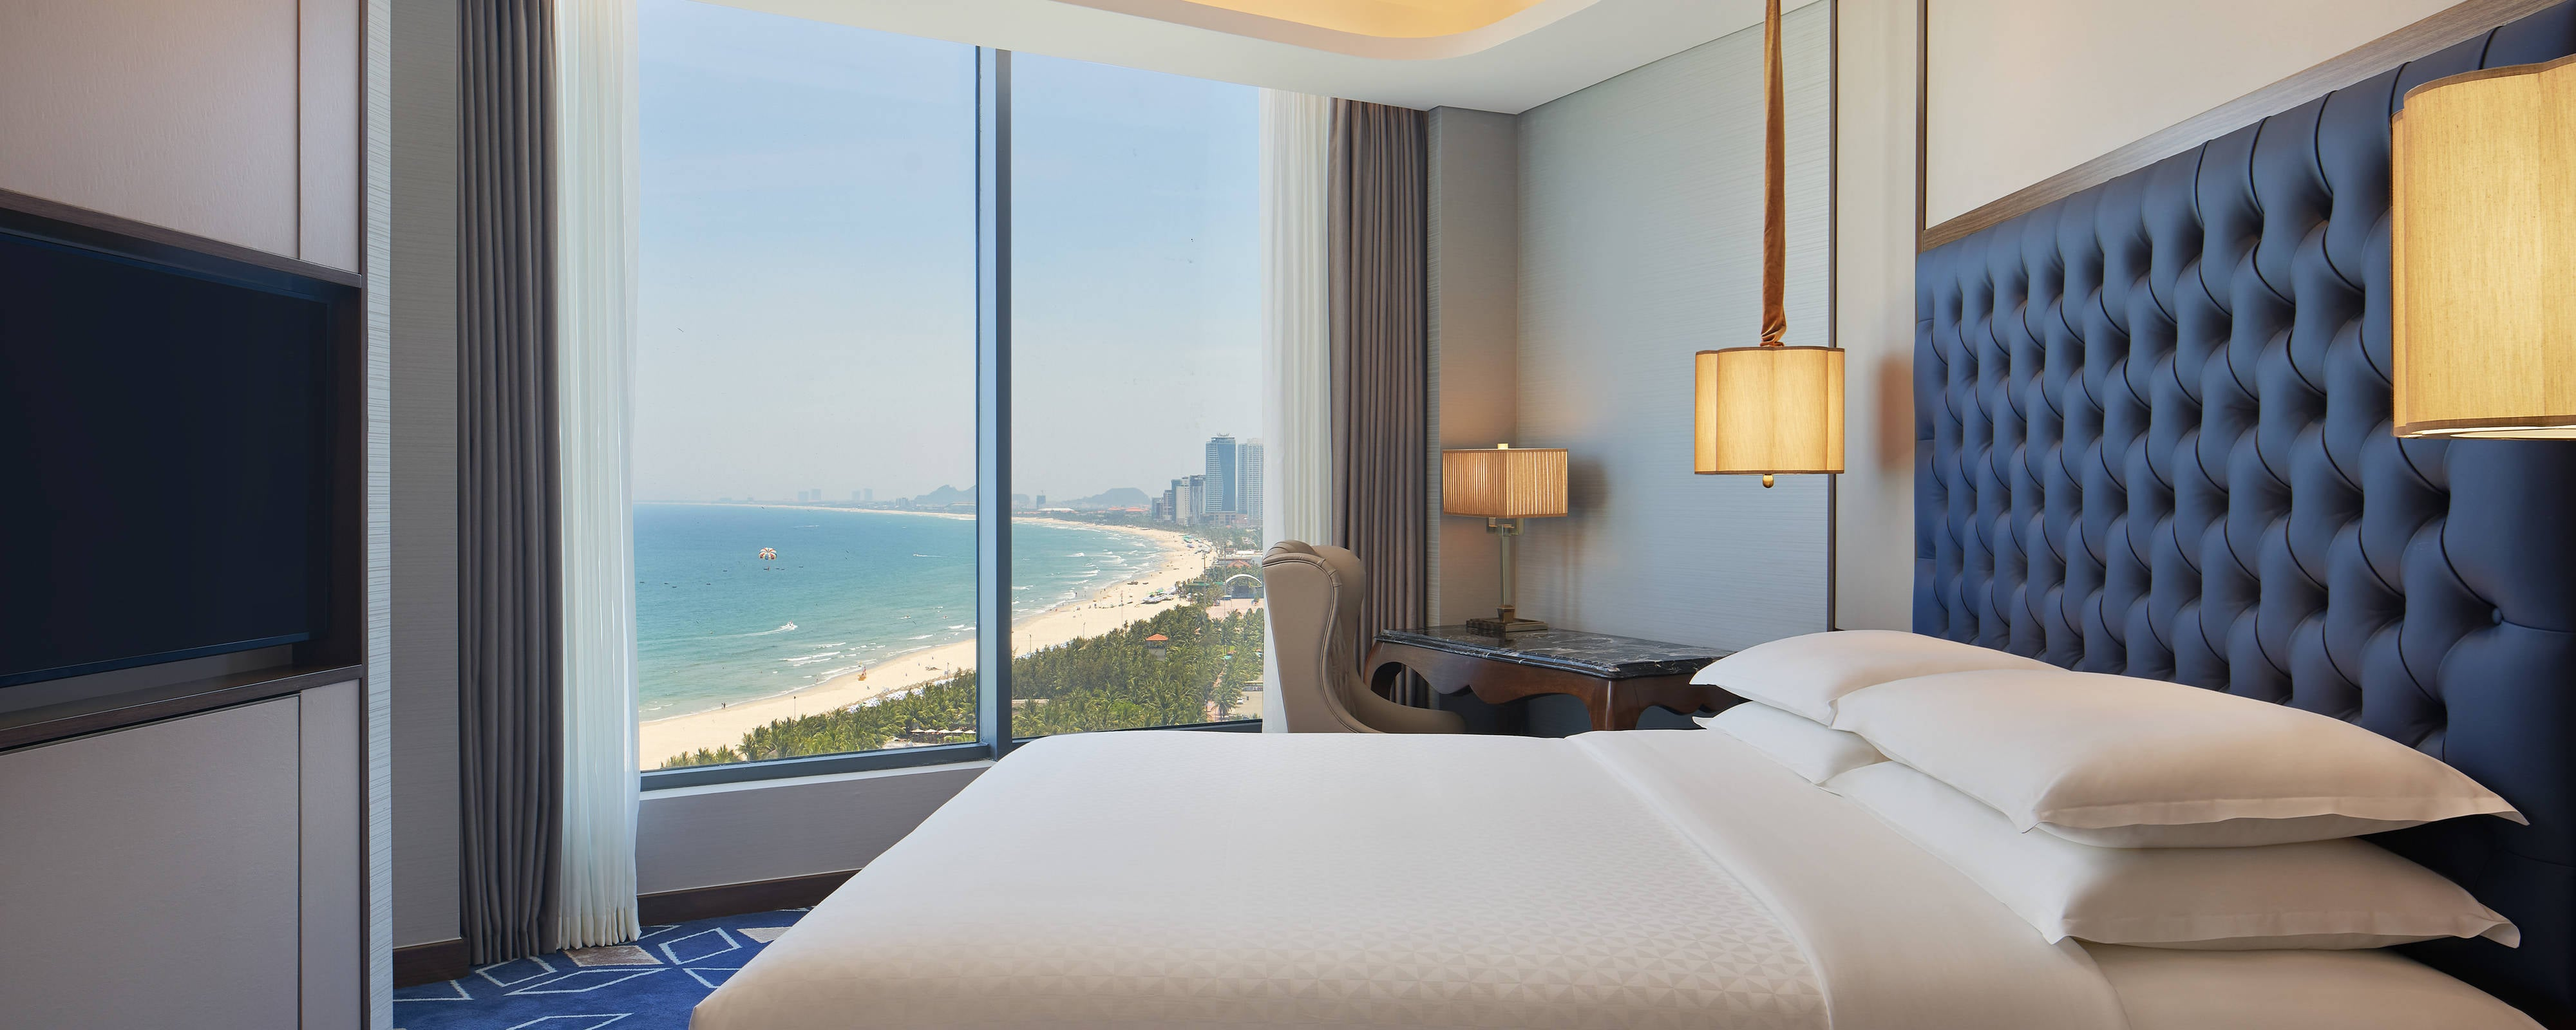 Danang Luxury Hotel - Resort | Four Points by Sheraton Danang